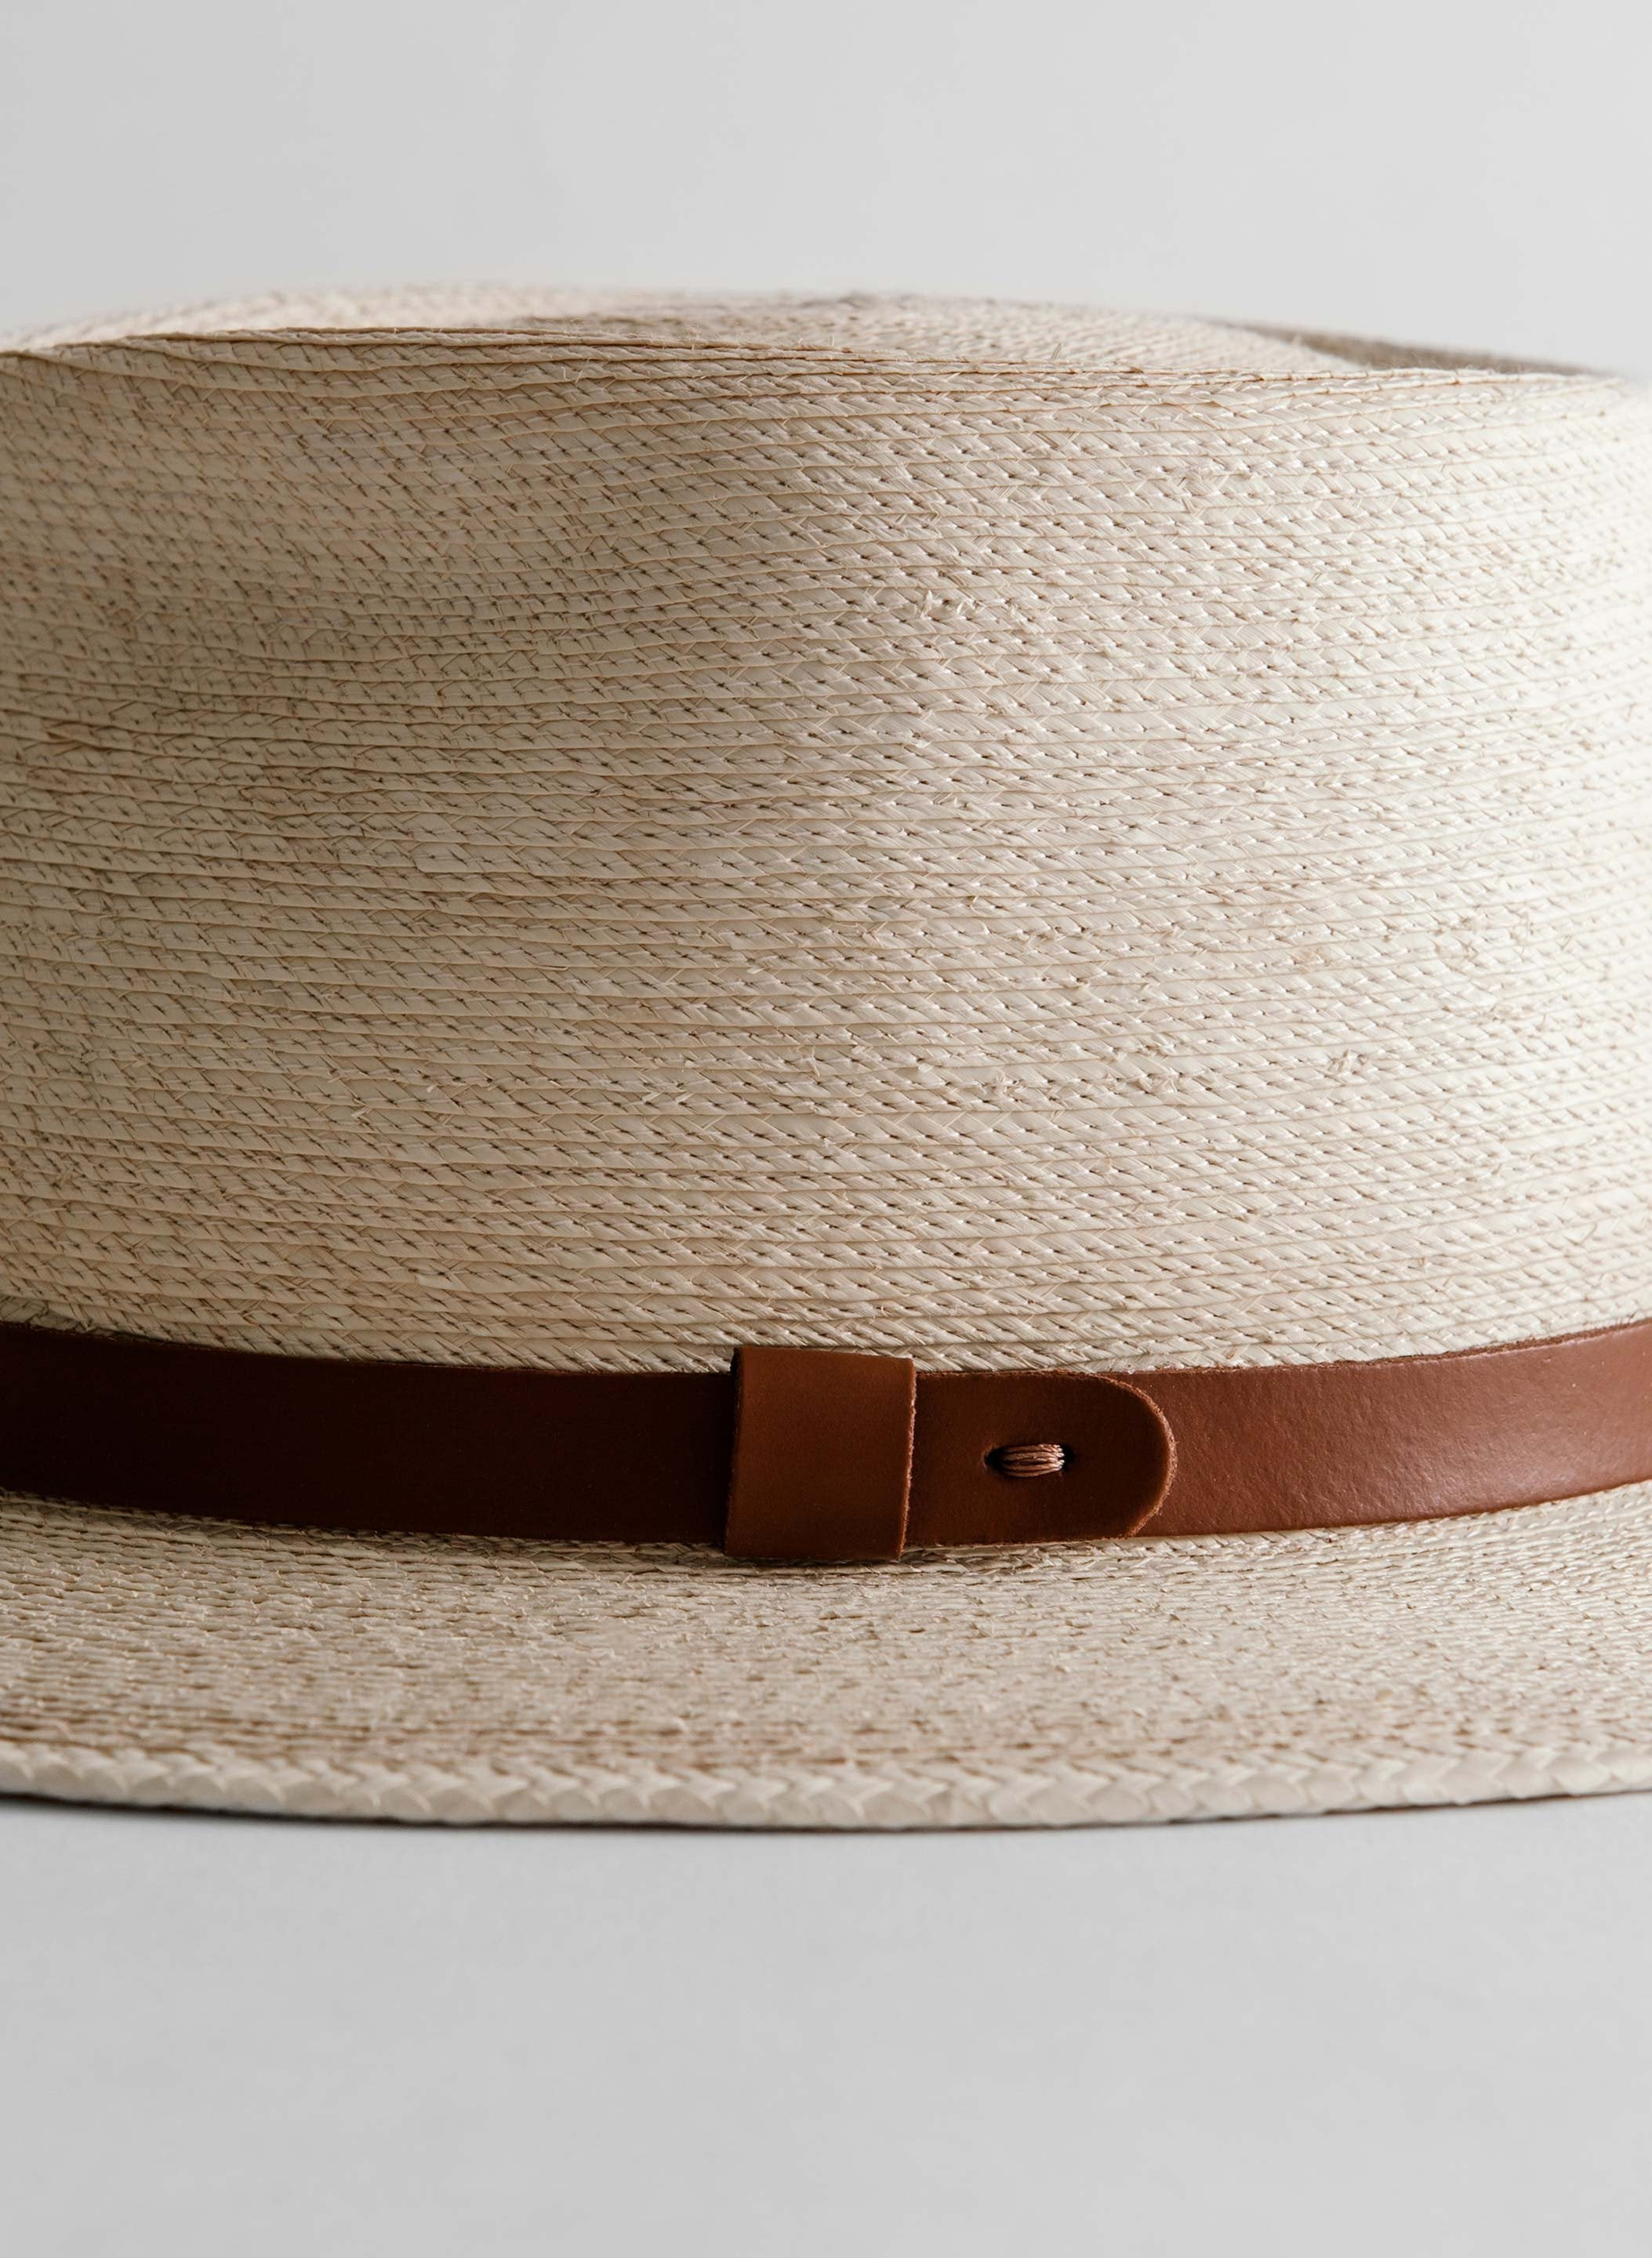 imogene + willie - handwoven guatemalan palm hat